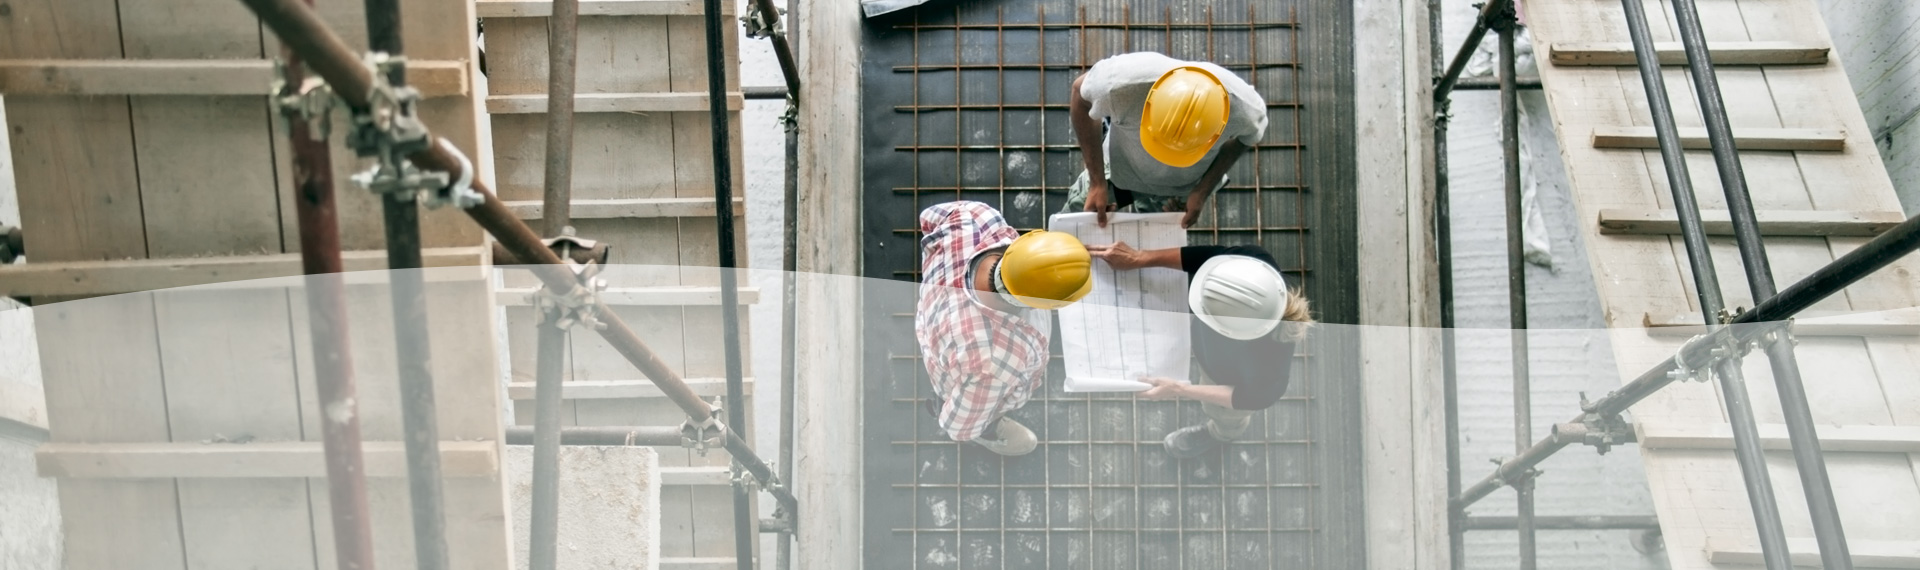 safety-training-scaffolds